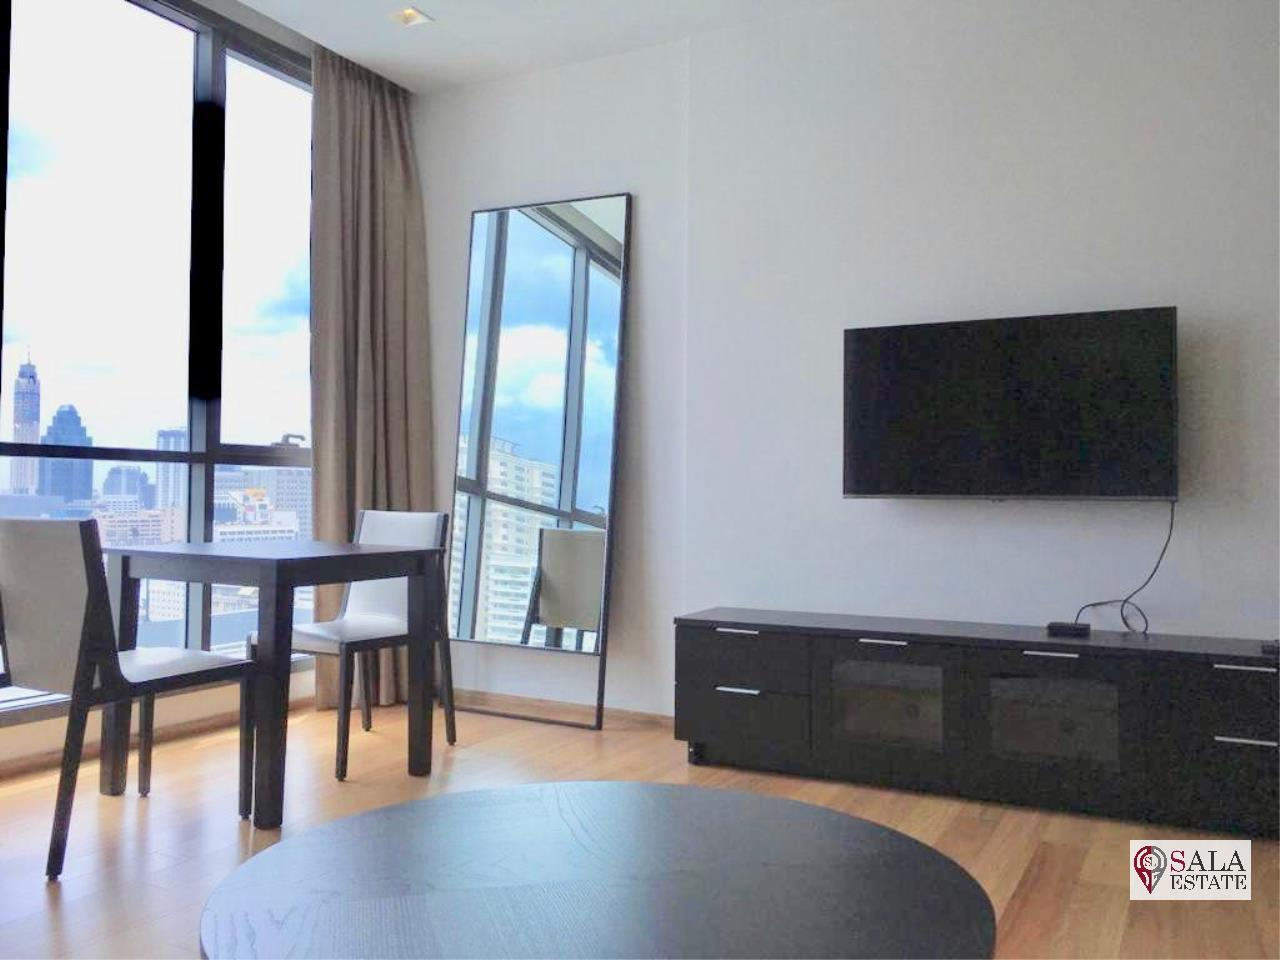 SALA ESTATE Agency's HYDE SUKHUMVIT 13 – BTS NANA,1 BEDROOM 1 BATHROOM, 4FULLY FURNISHED 1